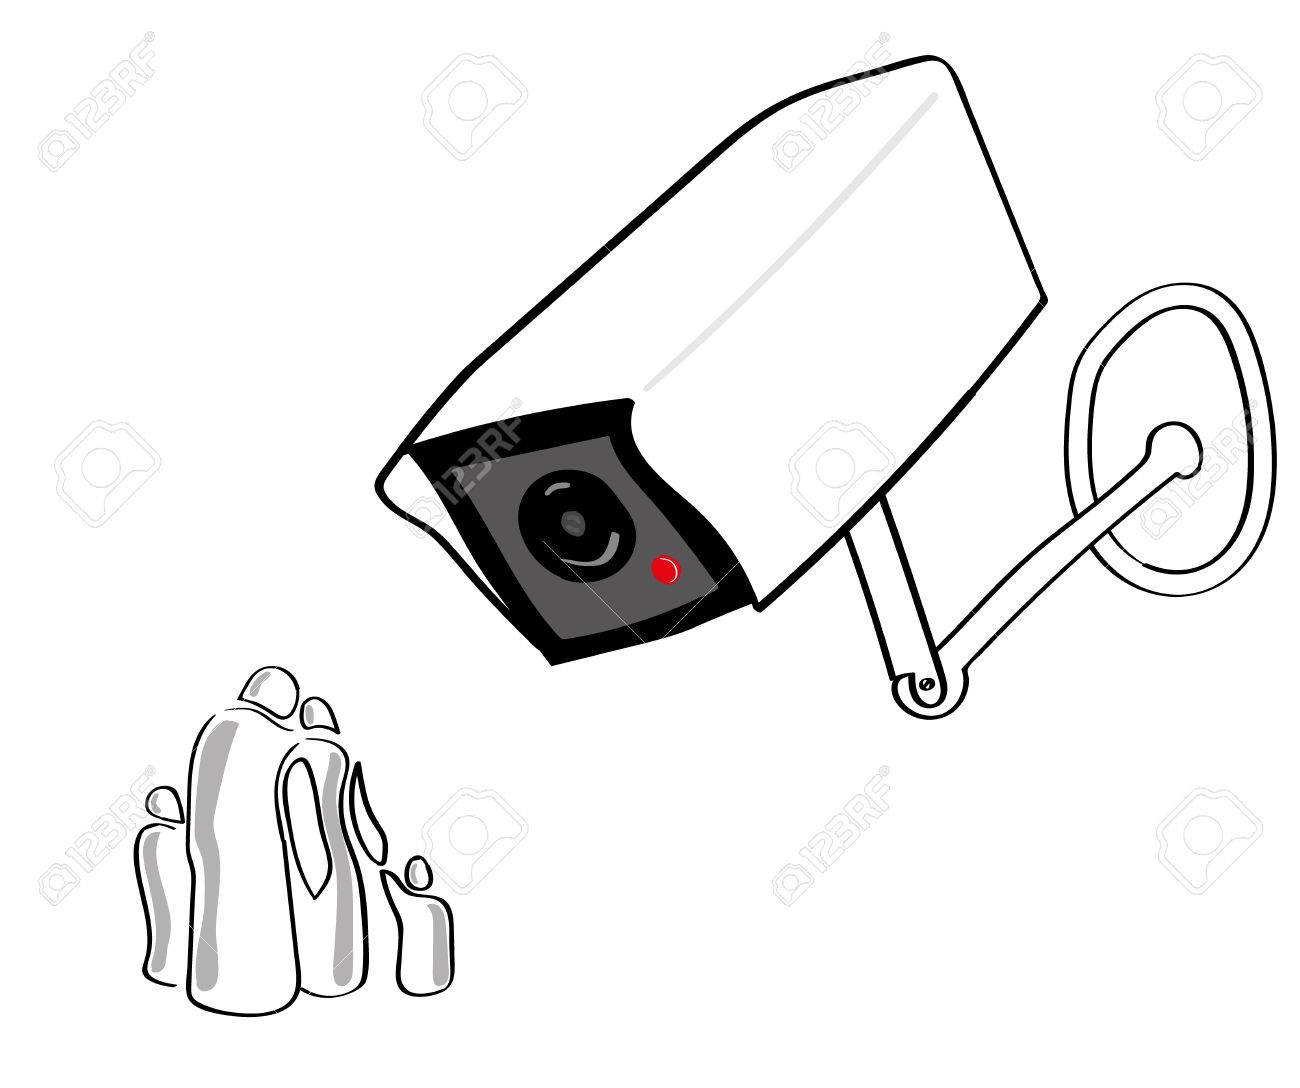 1300x1088 A Giant Cctv Or Surveillance Camera Looks Down On A Stylized